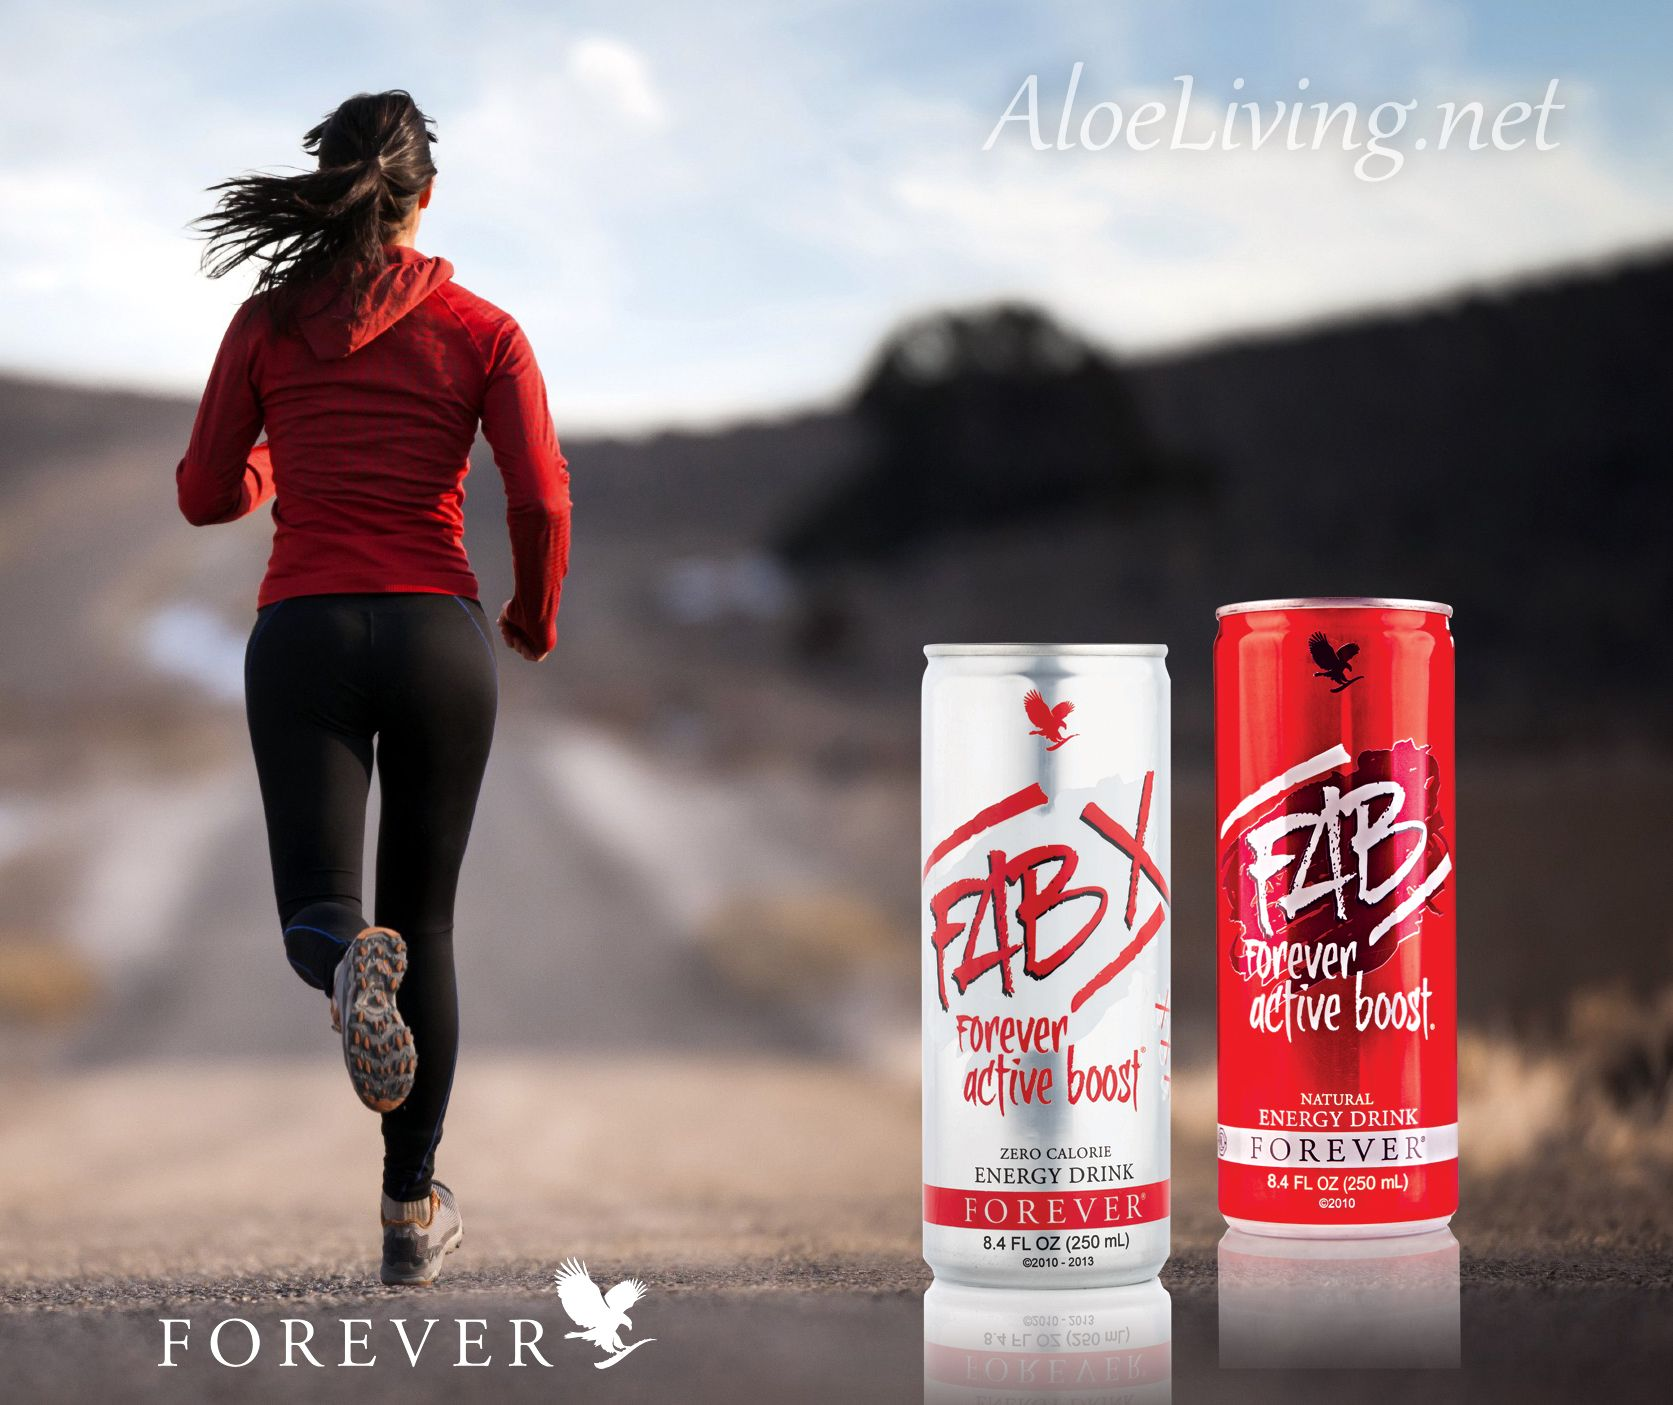 FAB X Forever Active Boost™ Energy Drink provides a